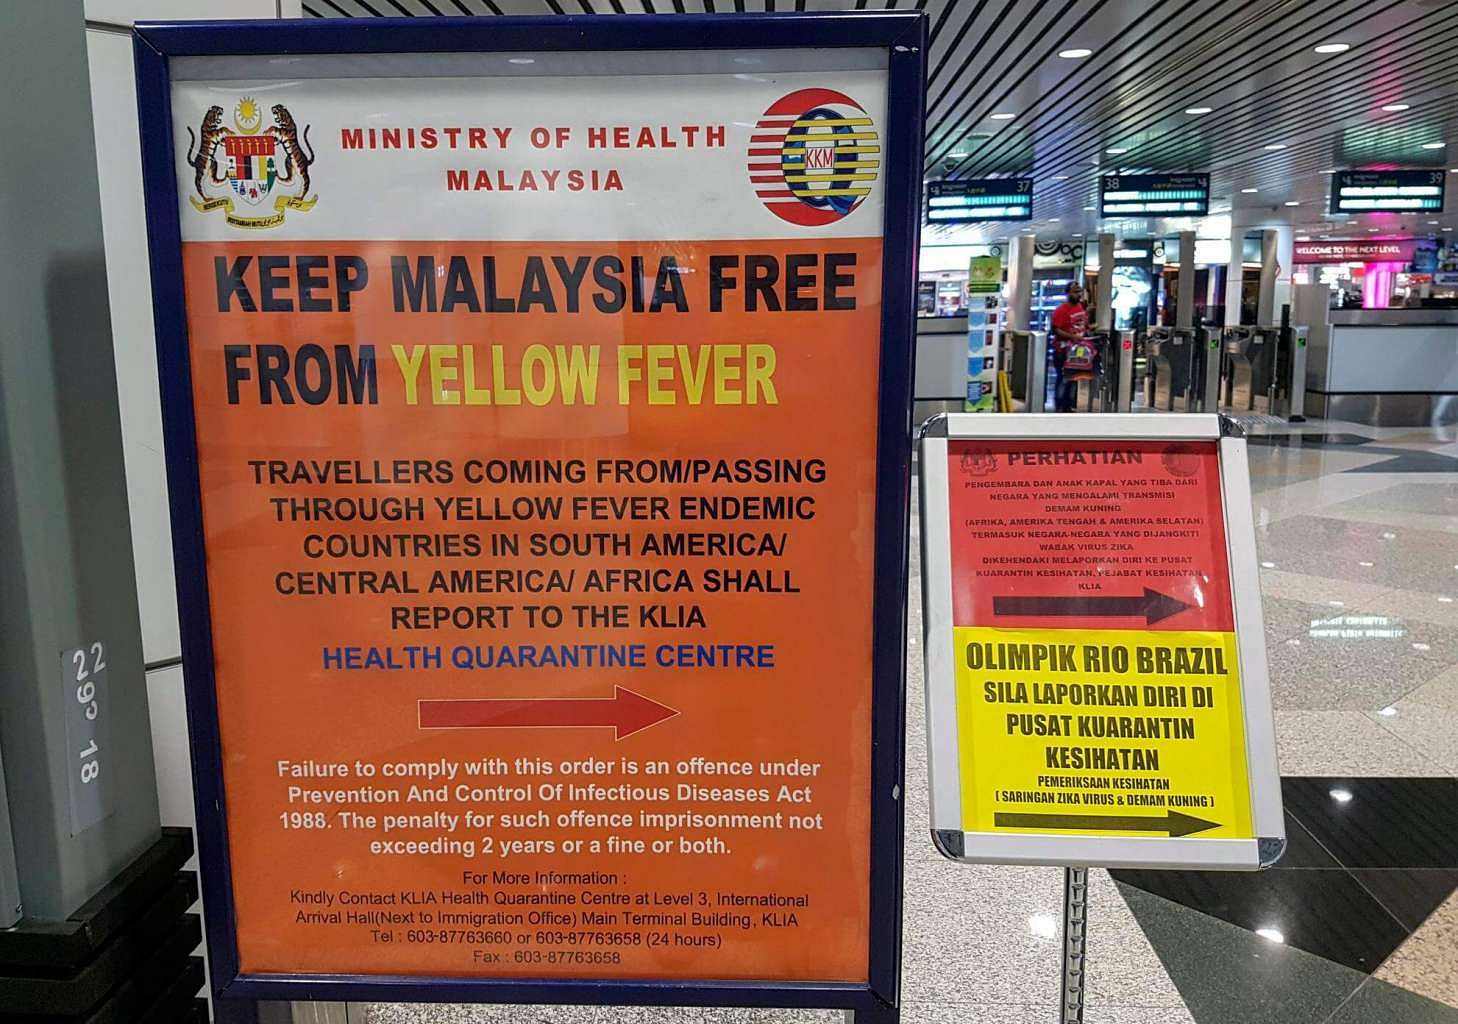 Malaysia Steps Up Health Screening At Entry Points Se Asia News Top Stories The Straits Times